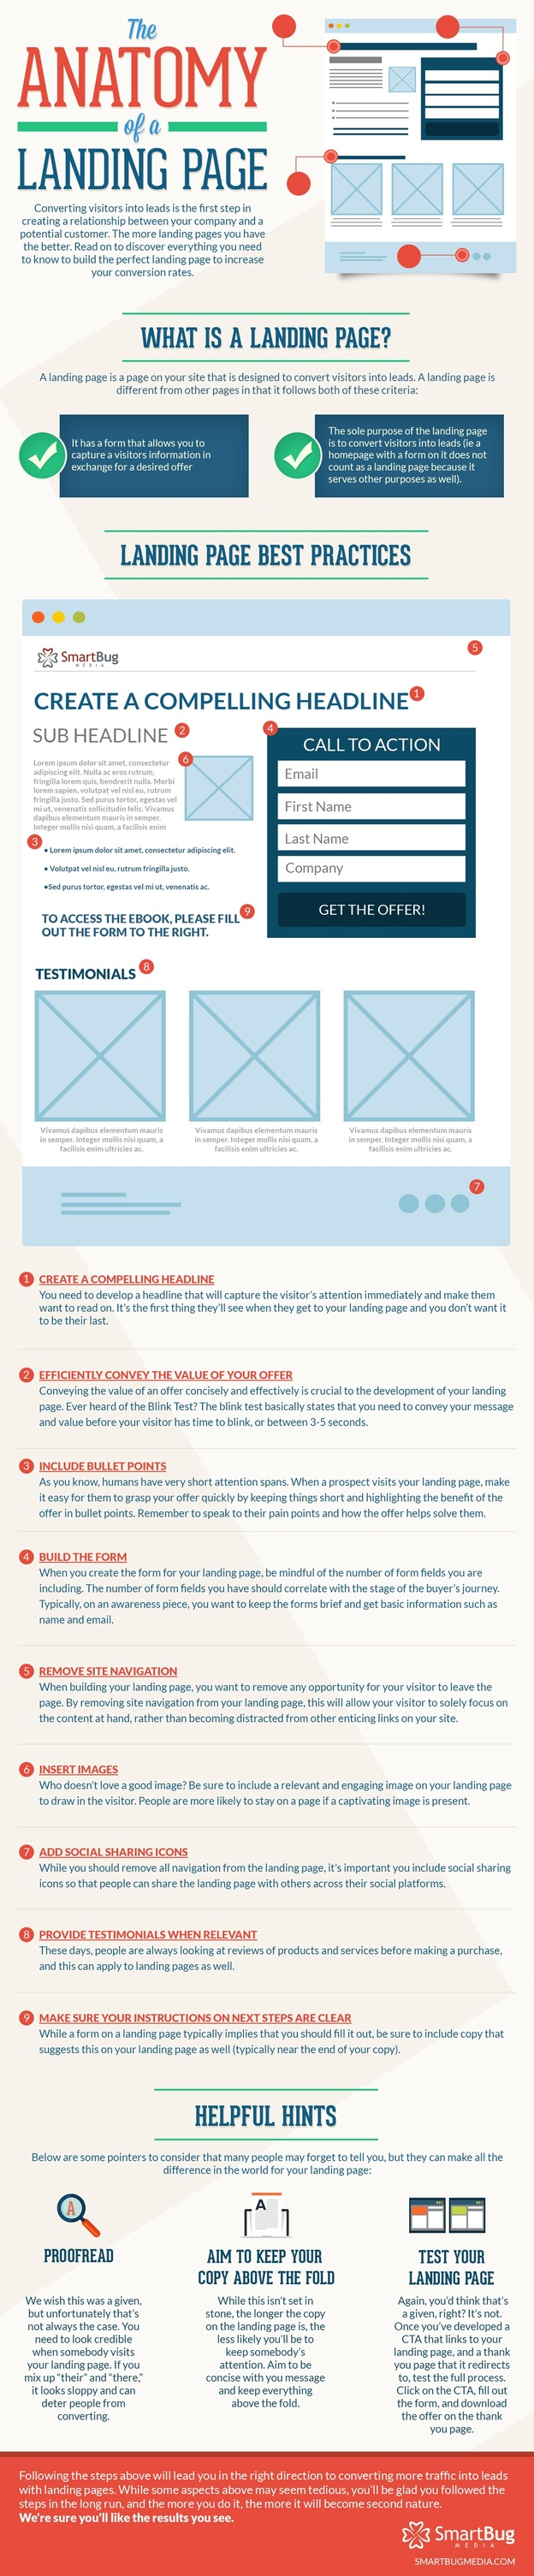 Anatomy of a Landing Page (Infographic)